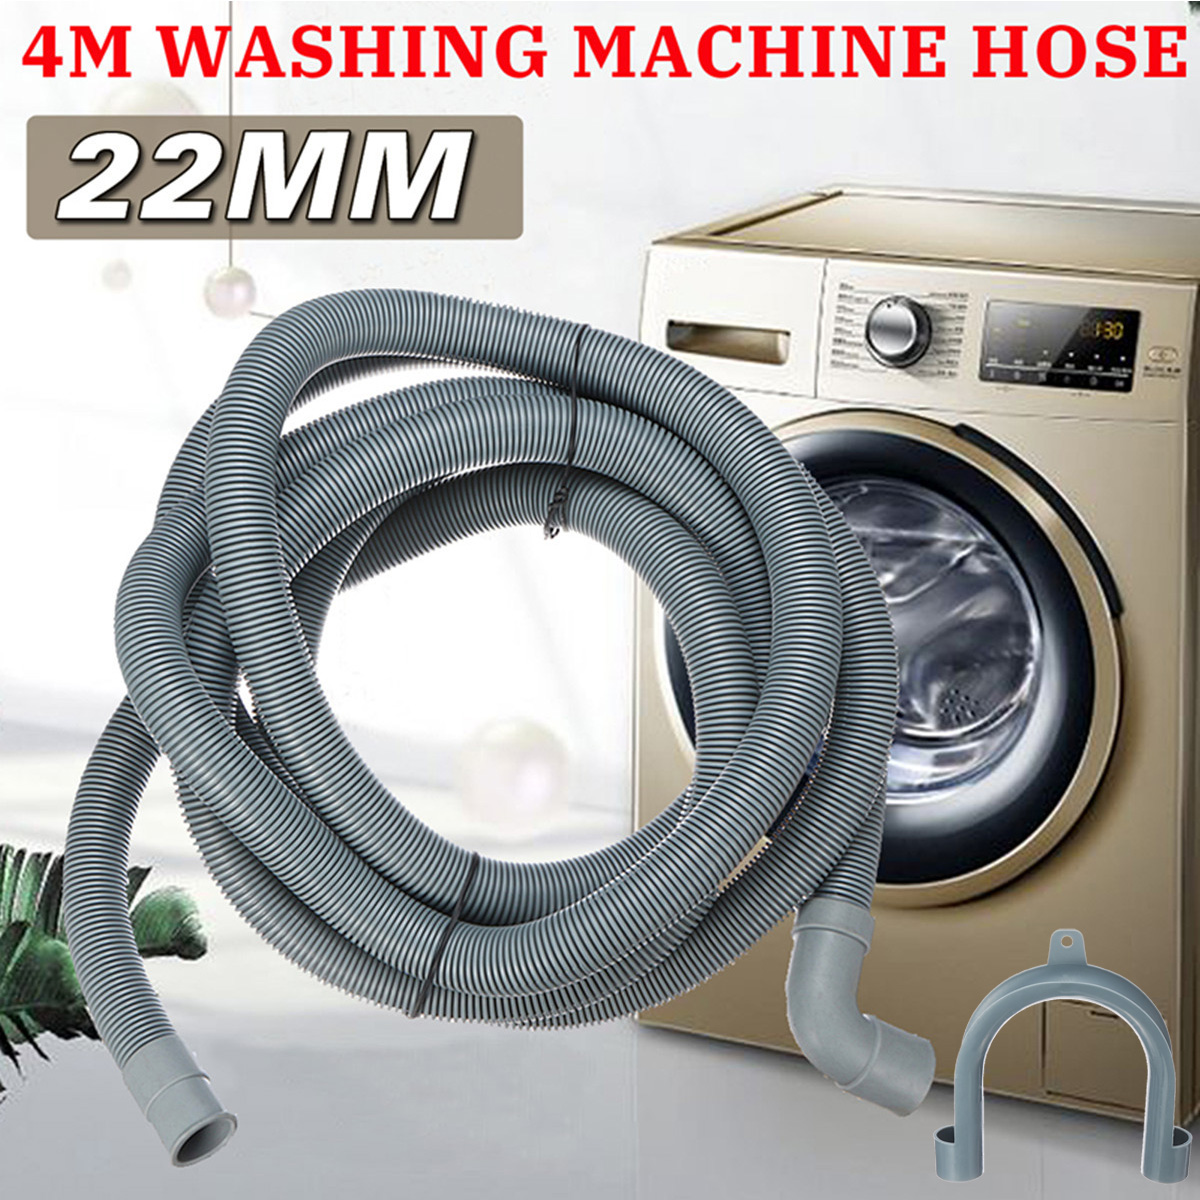 4M Wash Machine Dishwasher Drain Hose Outlet Water Pipe Flexible Extension 22mm With Bracket цена